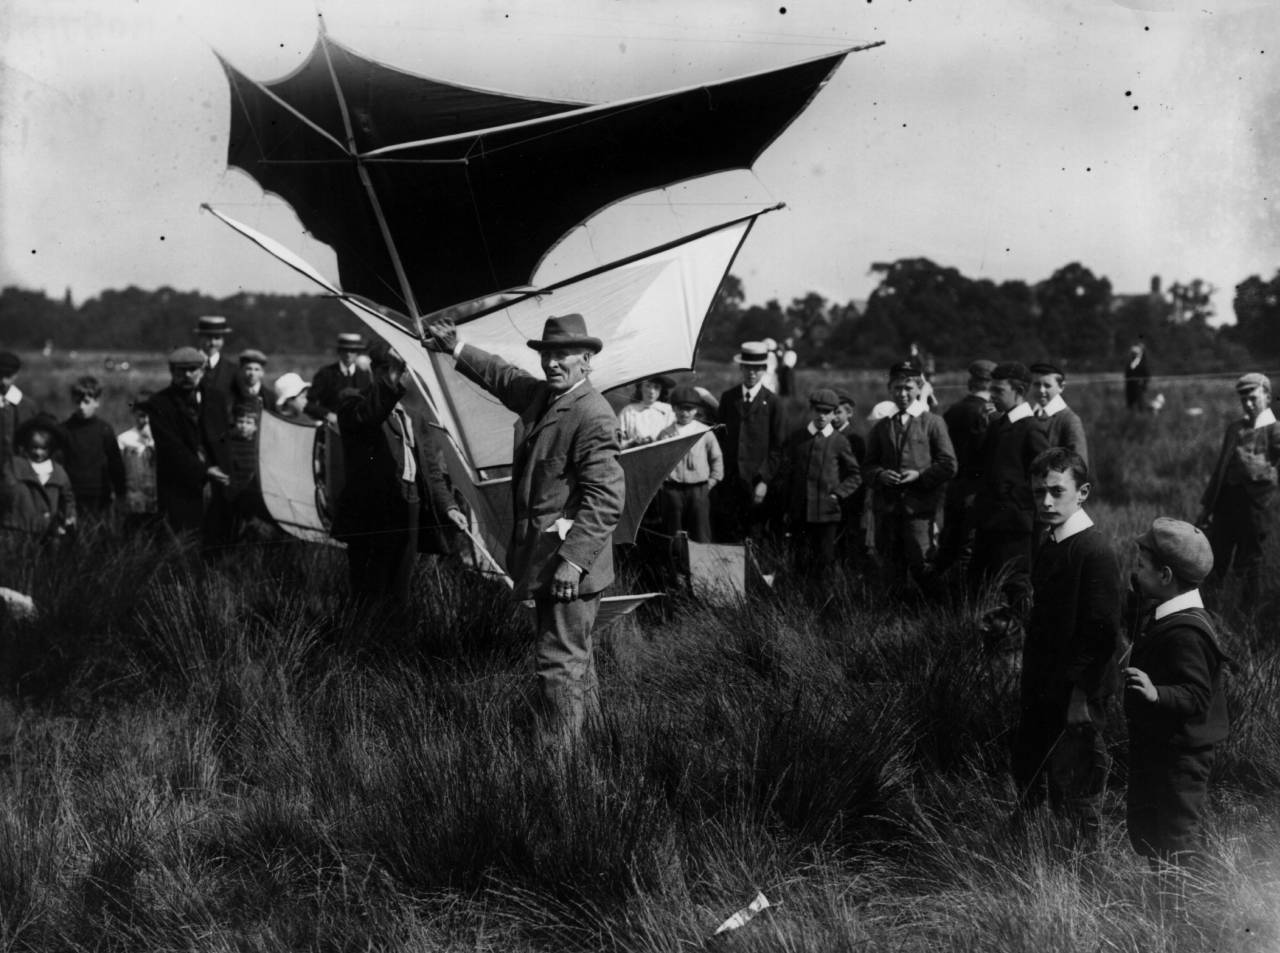 1908: A Brogdani dihedral kite being held ready for launch while a group of youths look on.